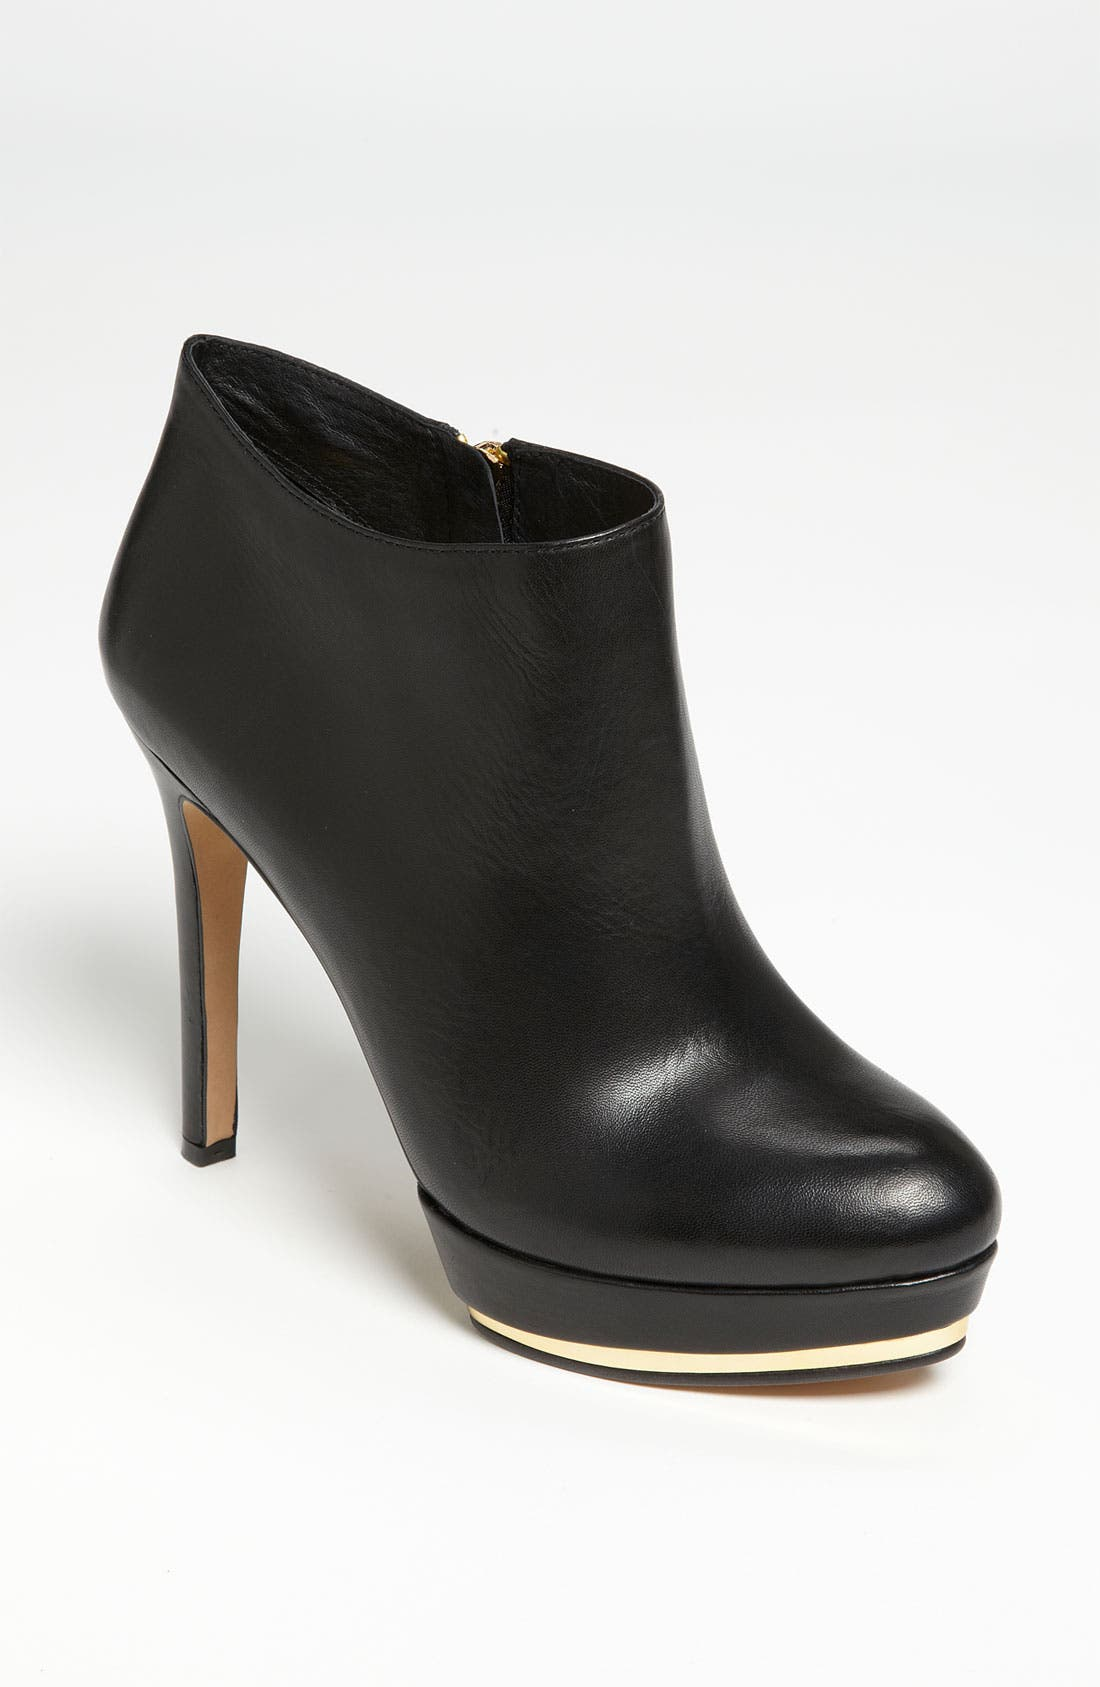 Alternate Image 1 Selected - Vince Camuto 'Dira' Bootie